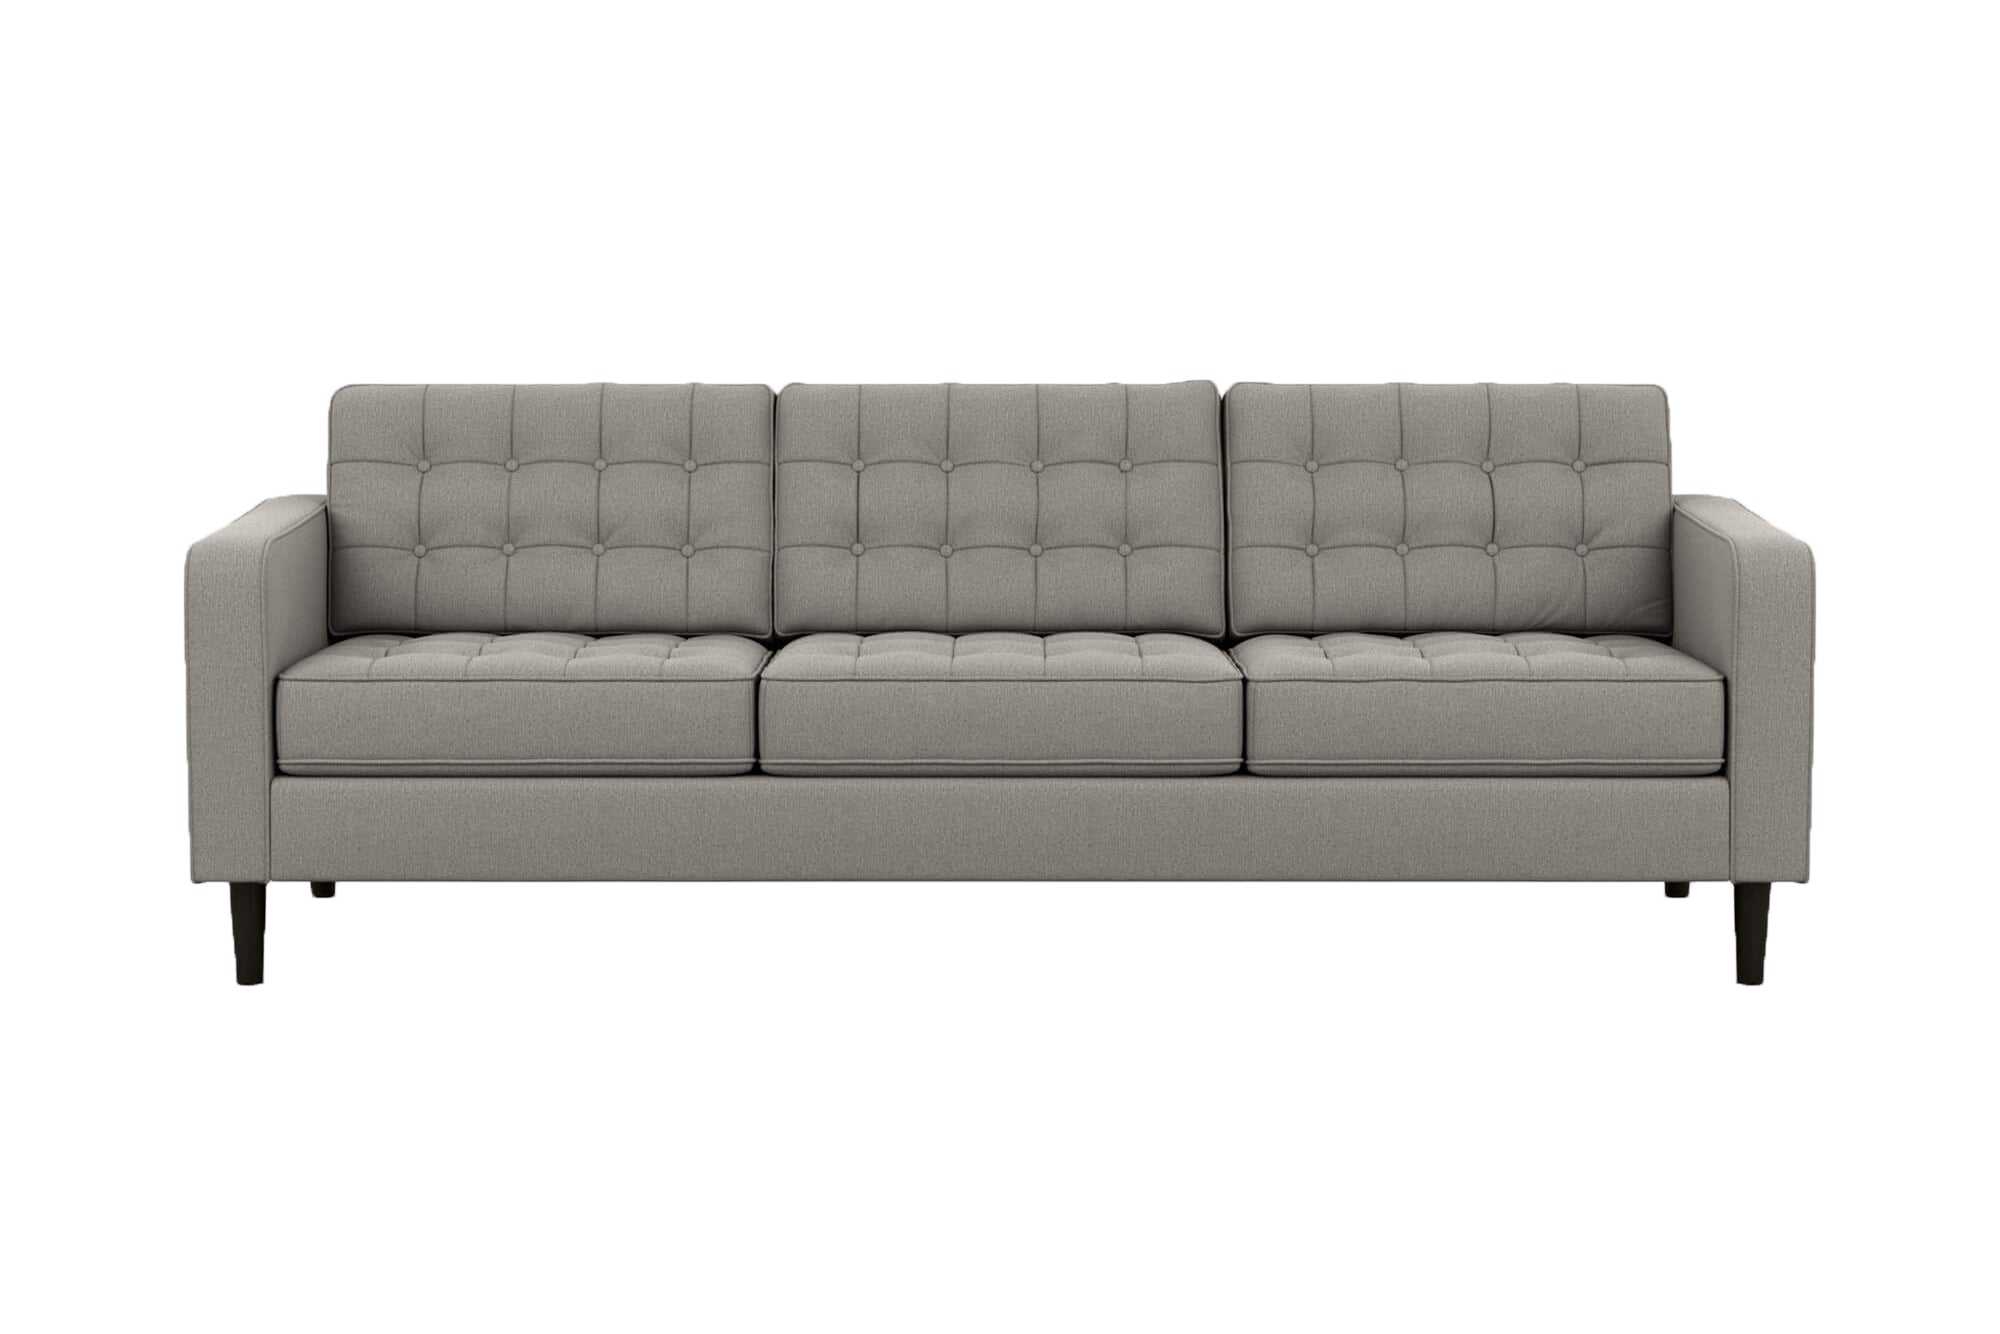 Reverie 3 Seat Sofa - Quick Ship